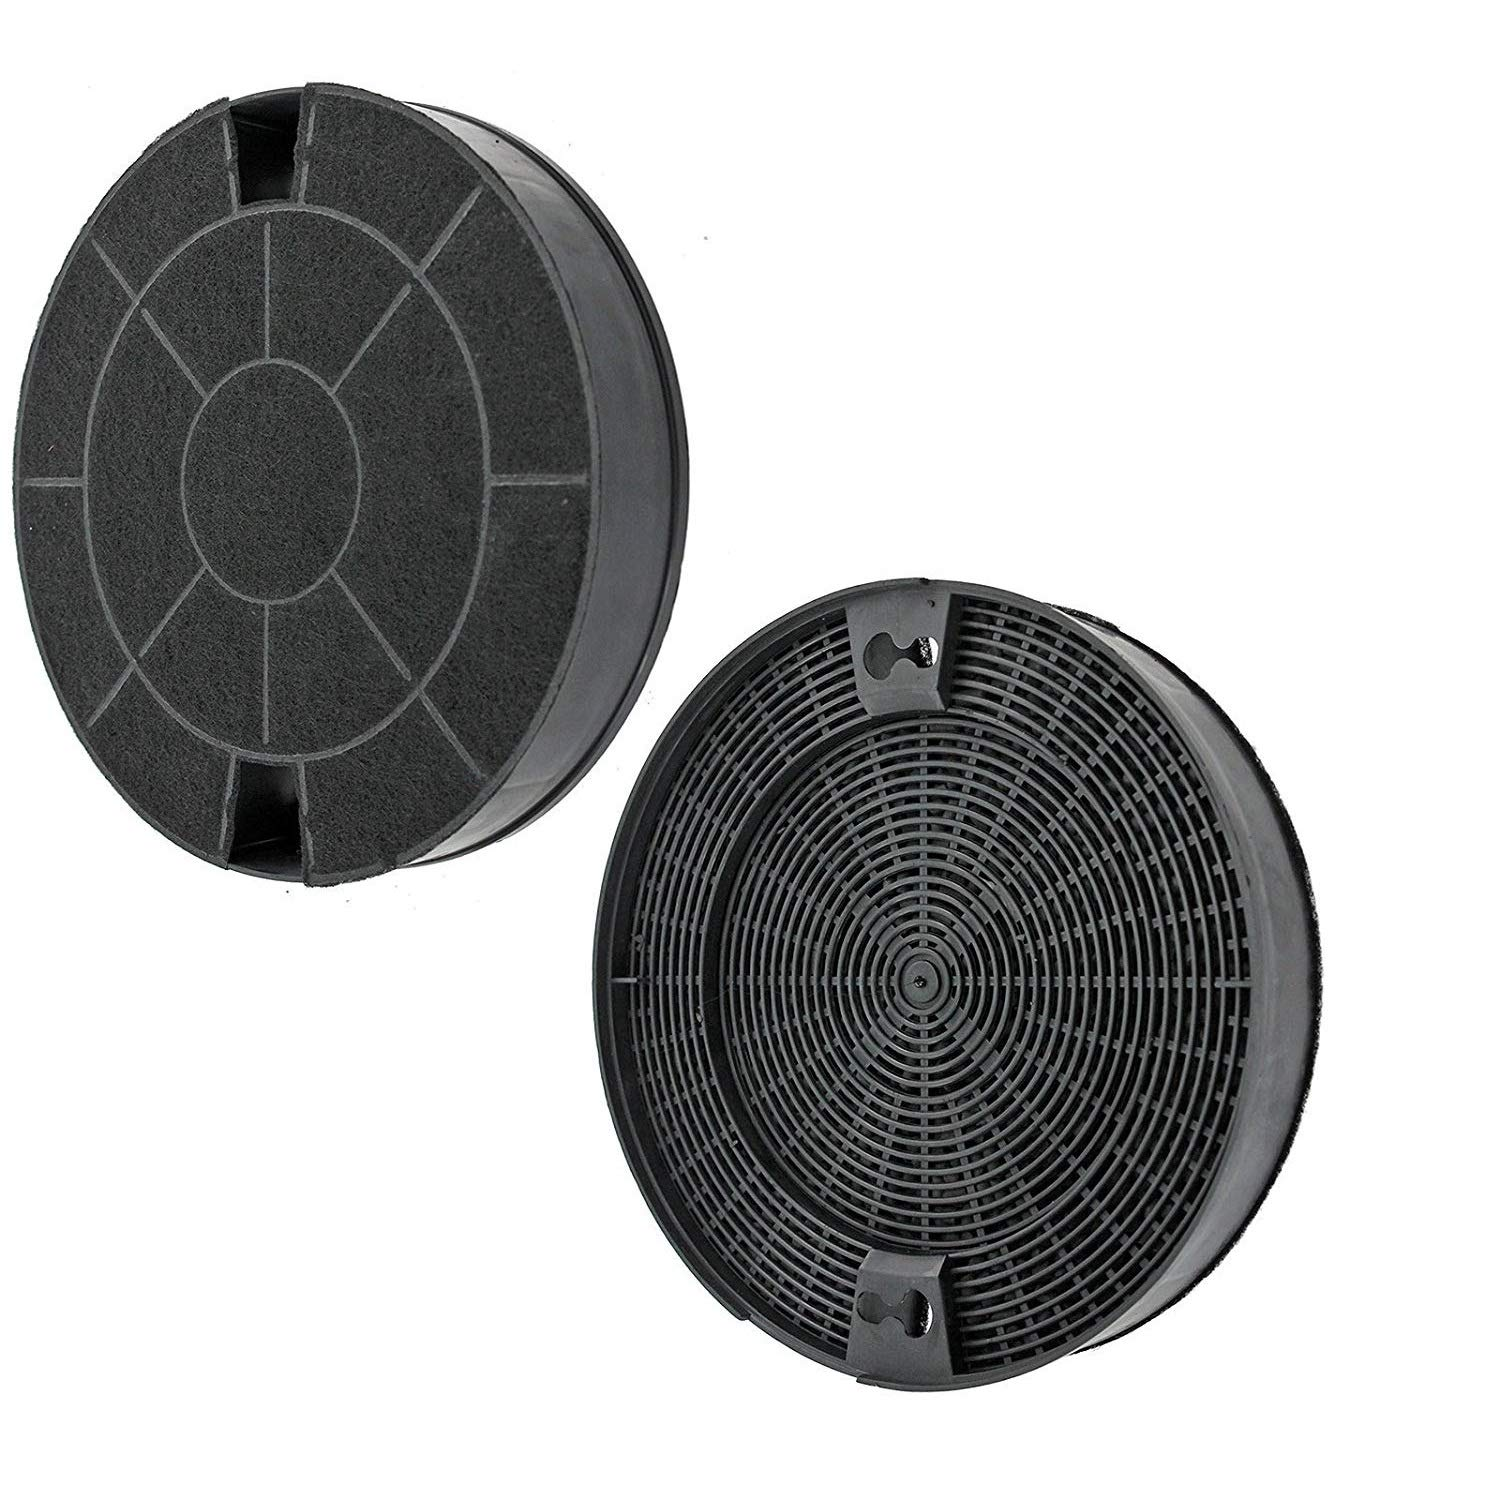 INDESIT H661.1 H661.1 Genuine Hood Extractor Fan Grease Filters x 2 GY